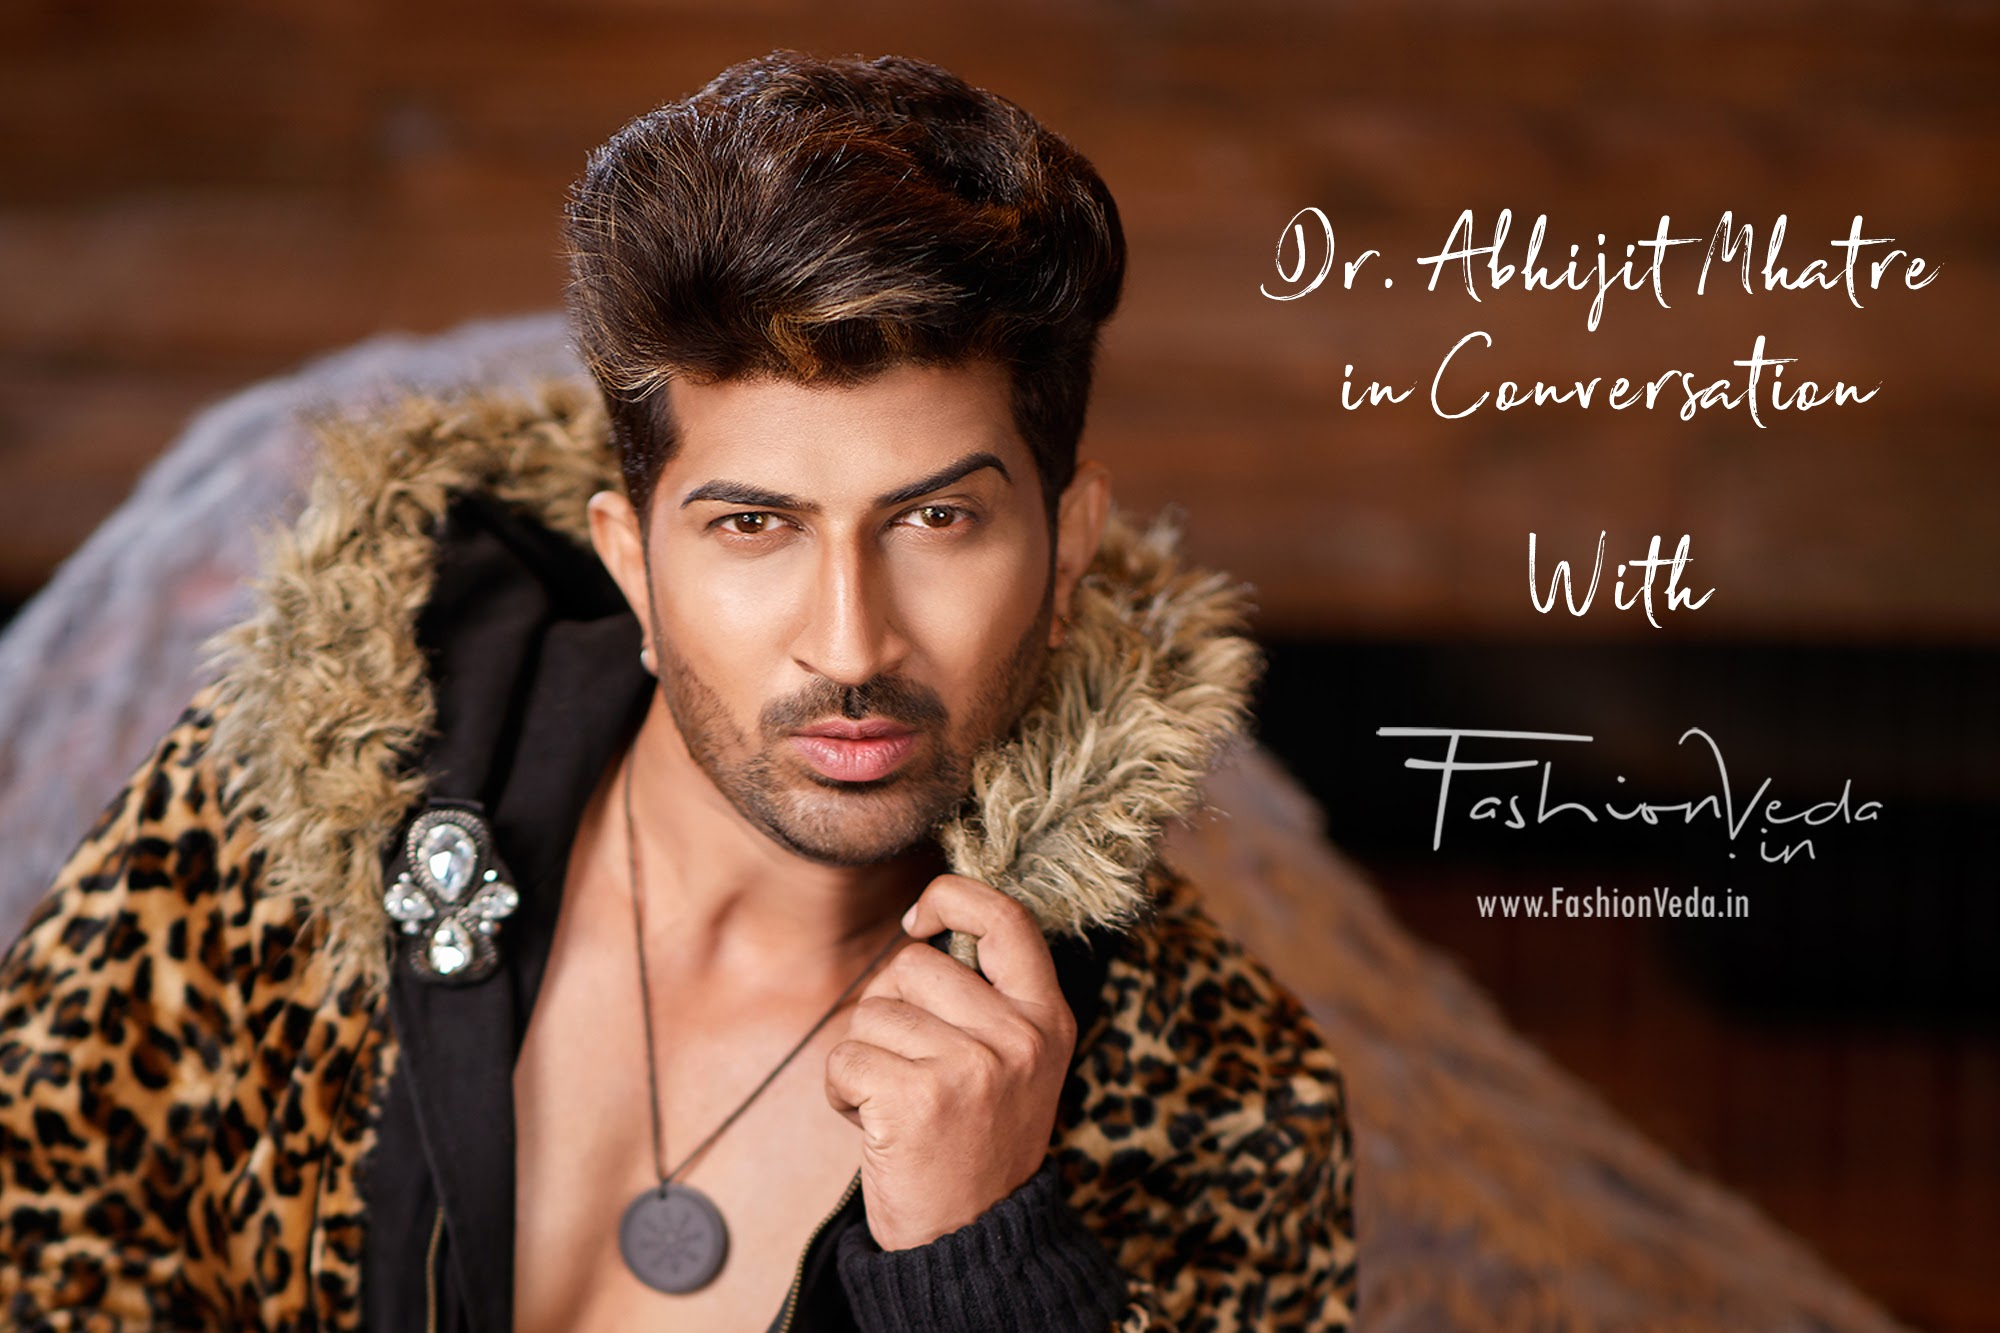 Dr. Abhijit Mhatre in Conversation with FashionVeda